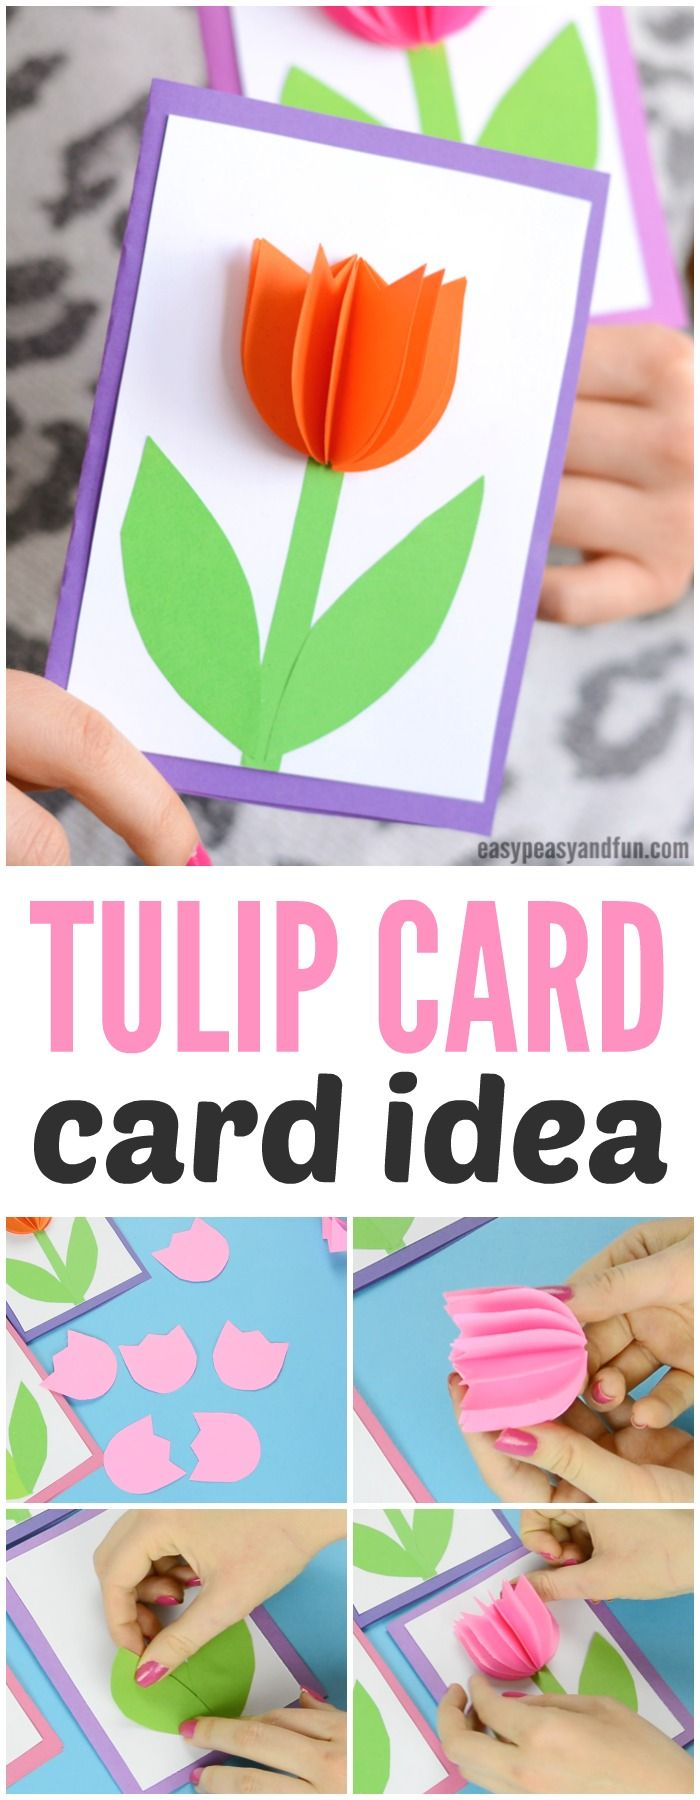 3D Paper Tulip Card - Simple Mother's Day Card Idea | Card ...